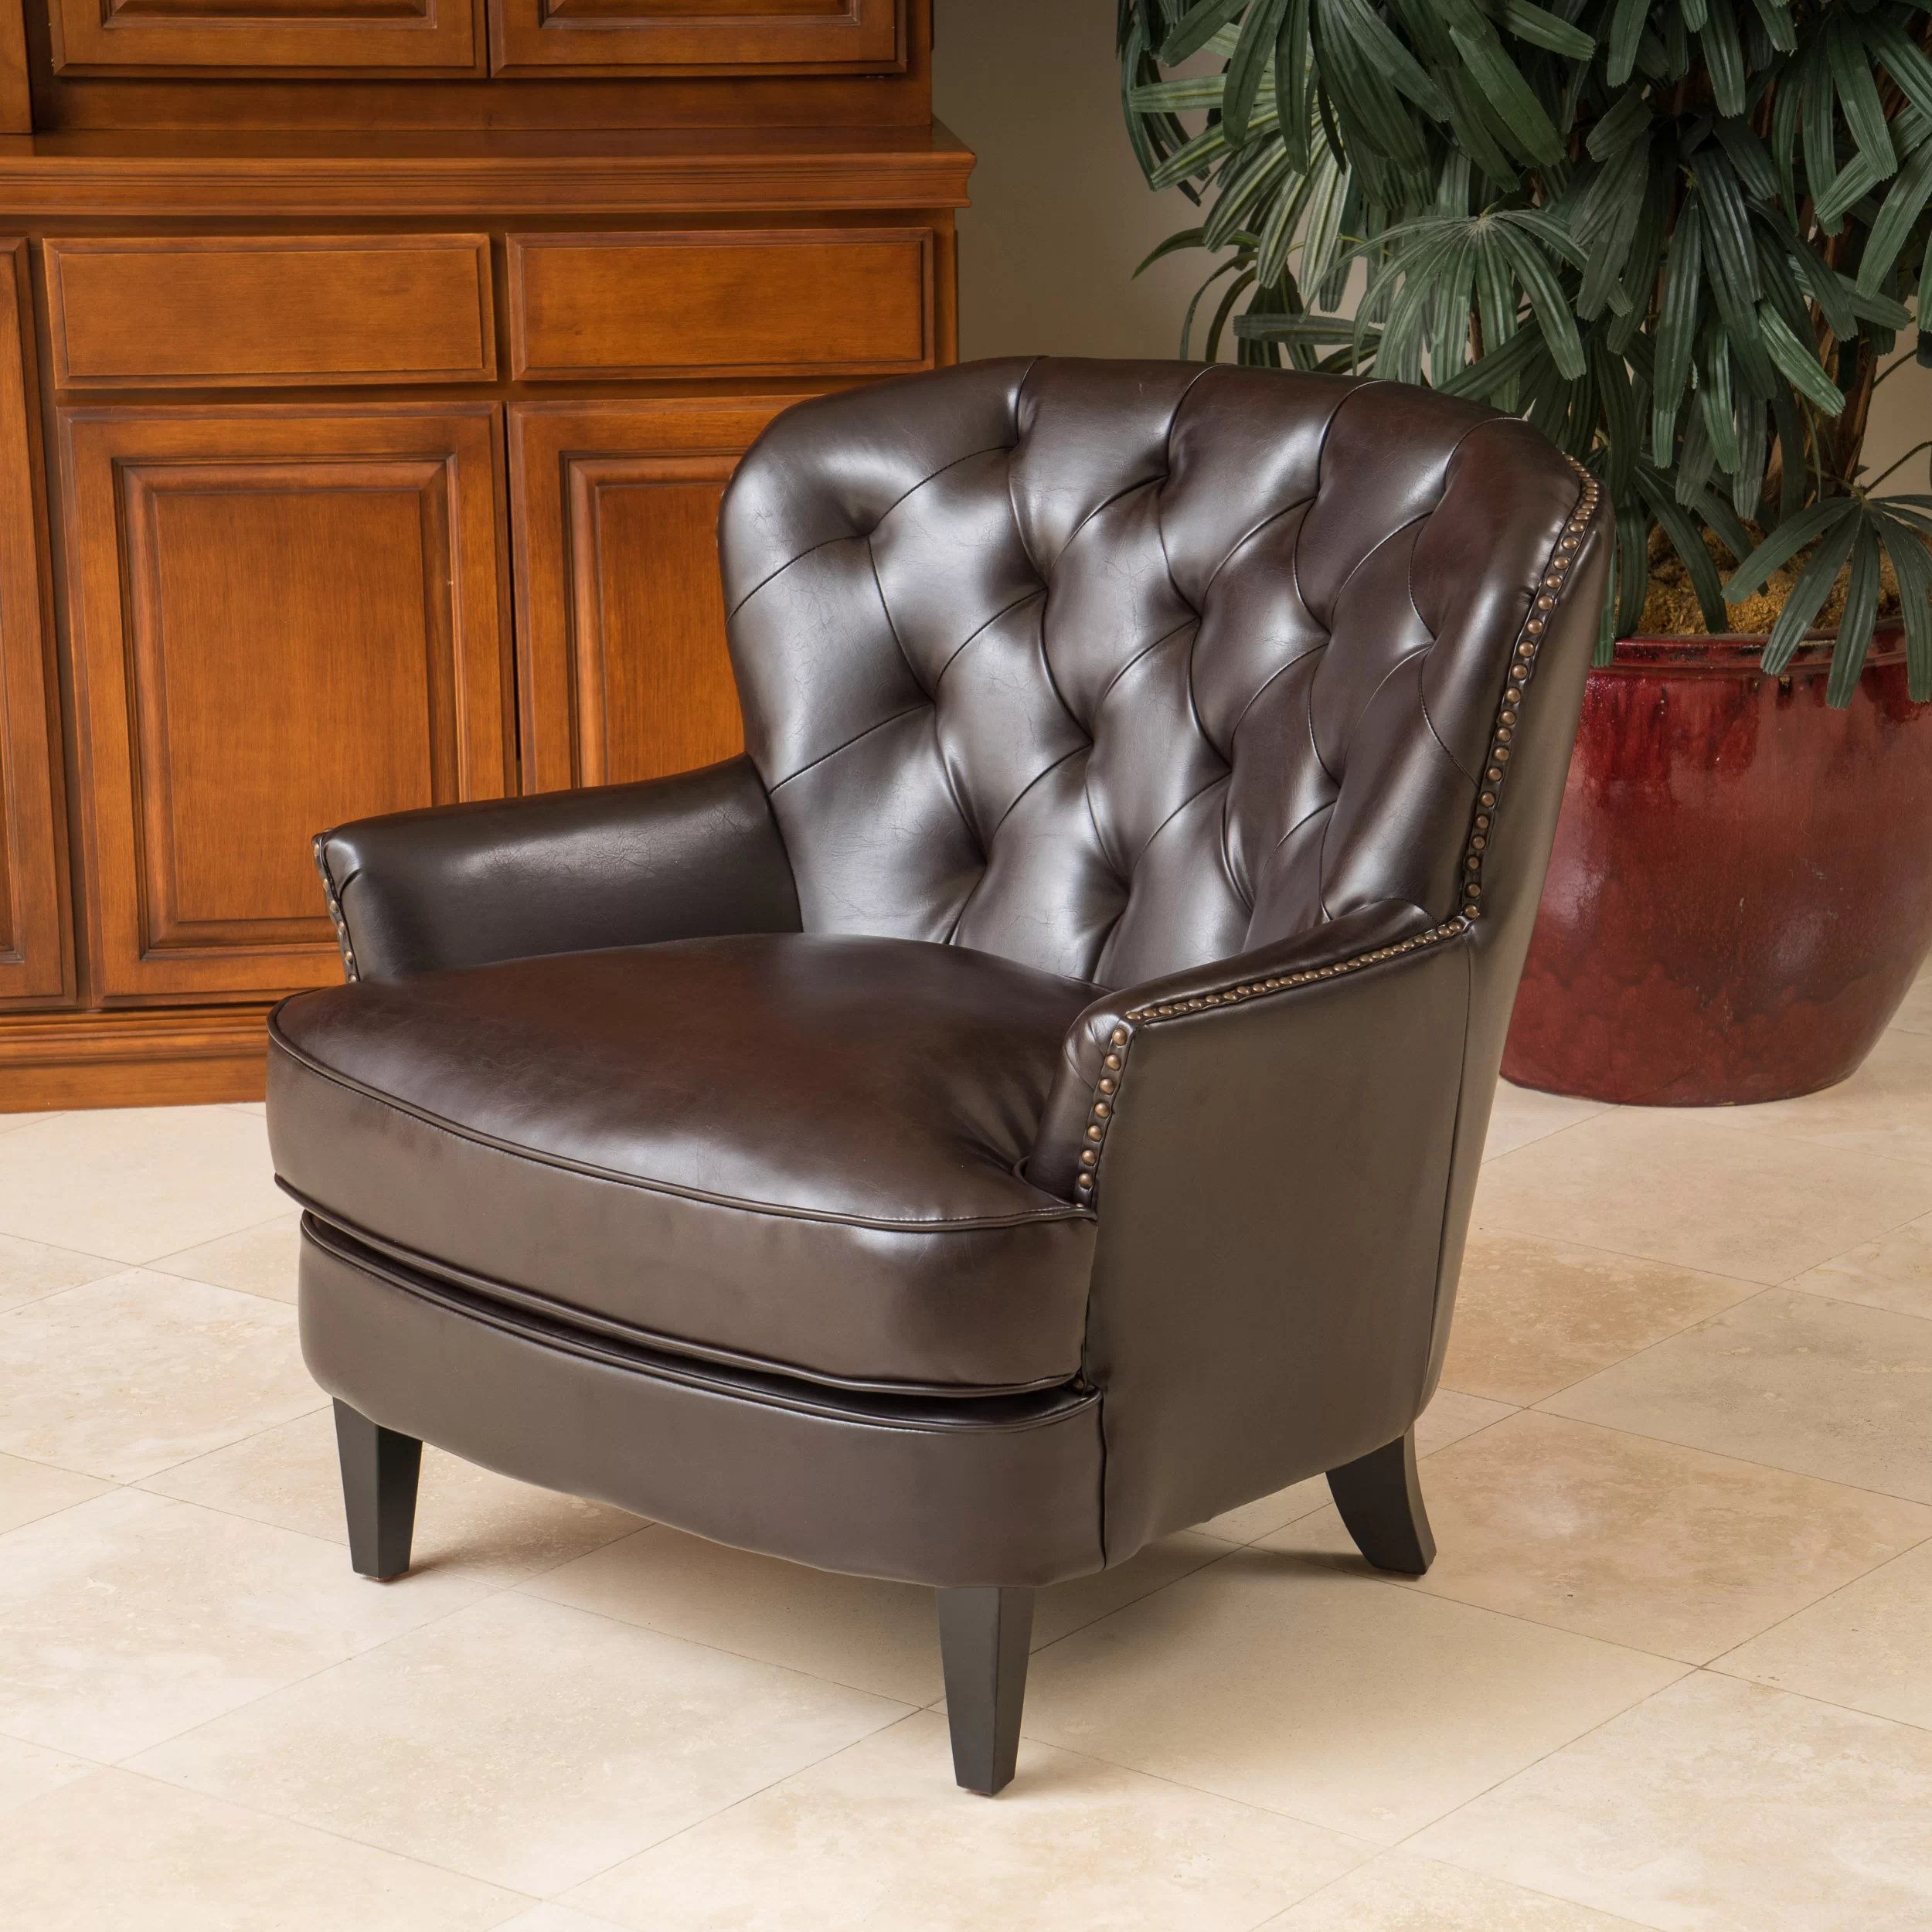 christopher knight leather chair stool hire home loft concepts waldorf diamond tufted club